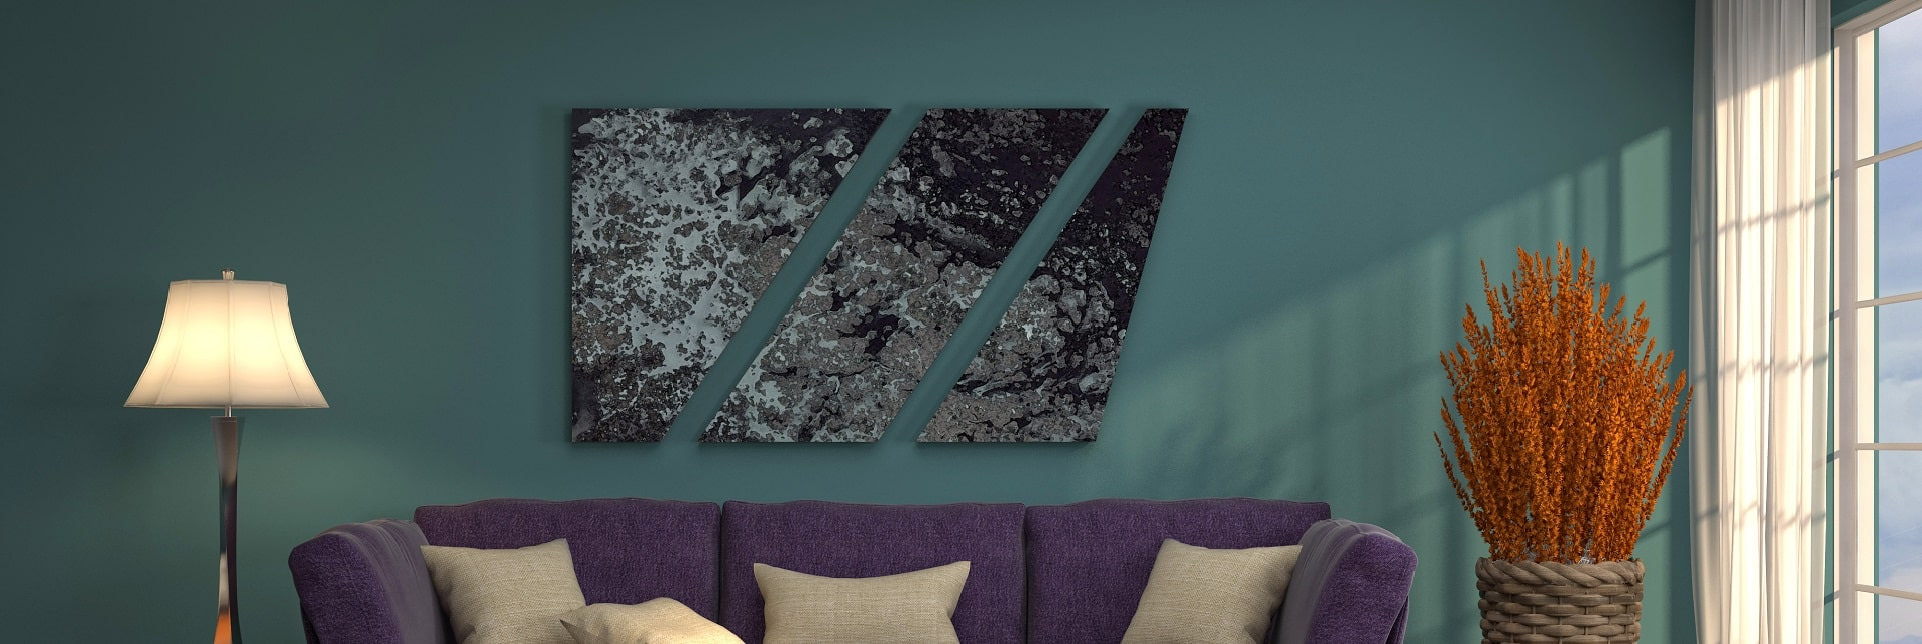 Custom Shaped Stretched Canvas